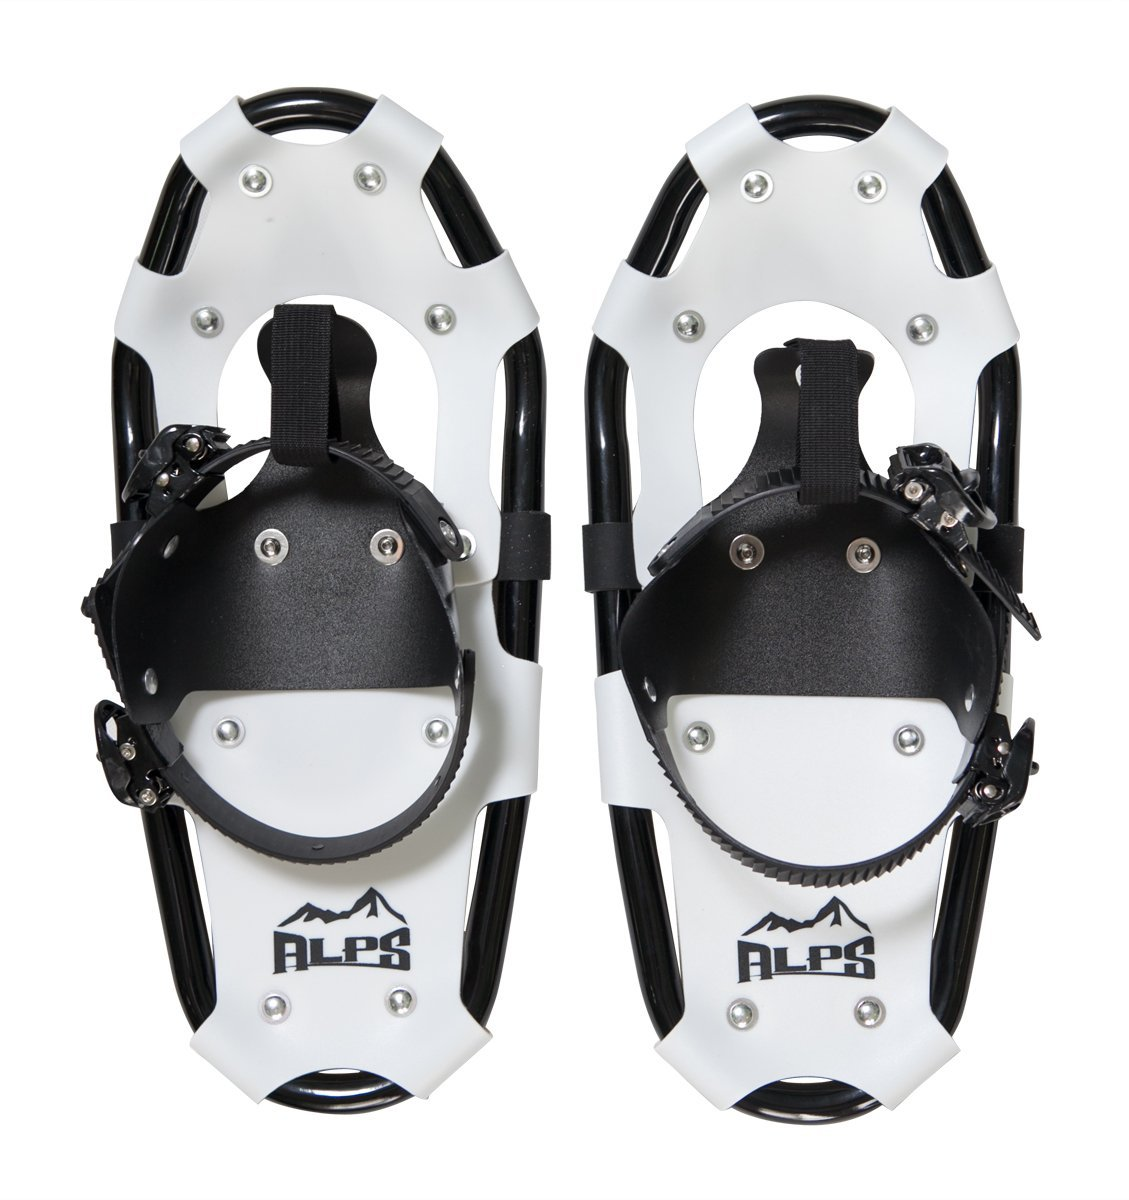 ALPS Snowshoes with Carrying Tote by Alps